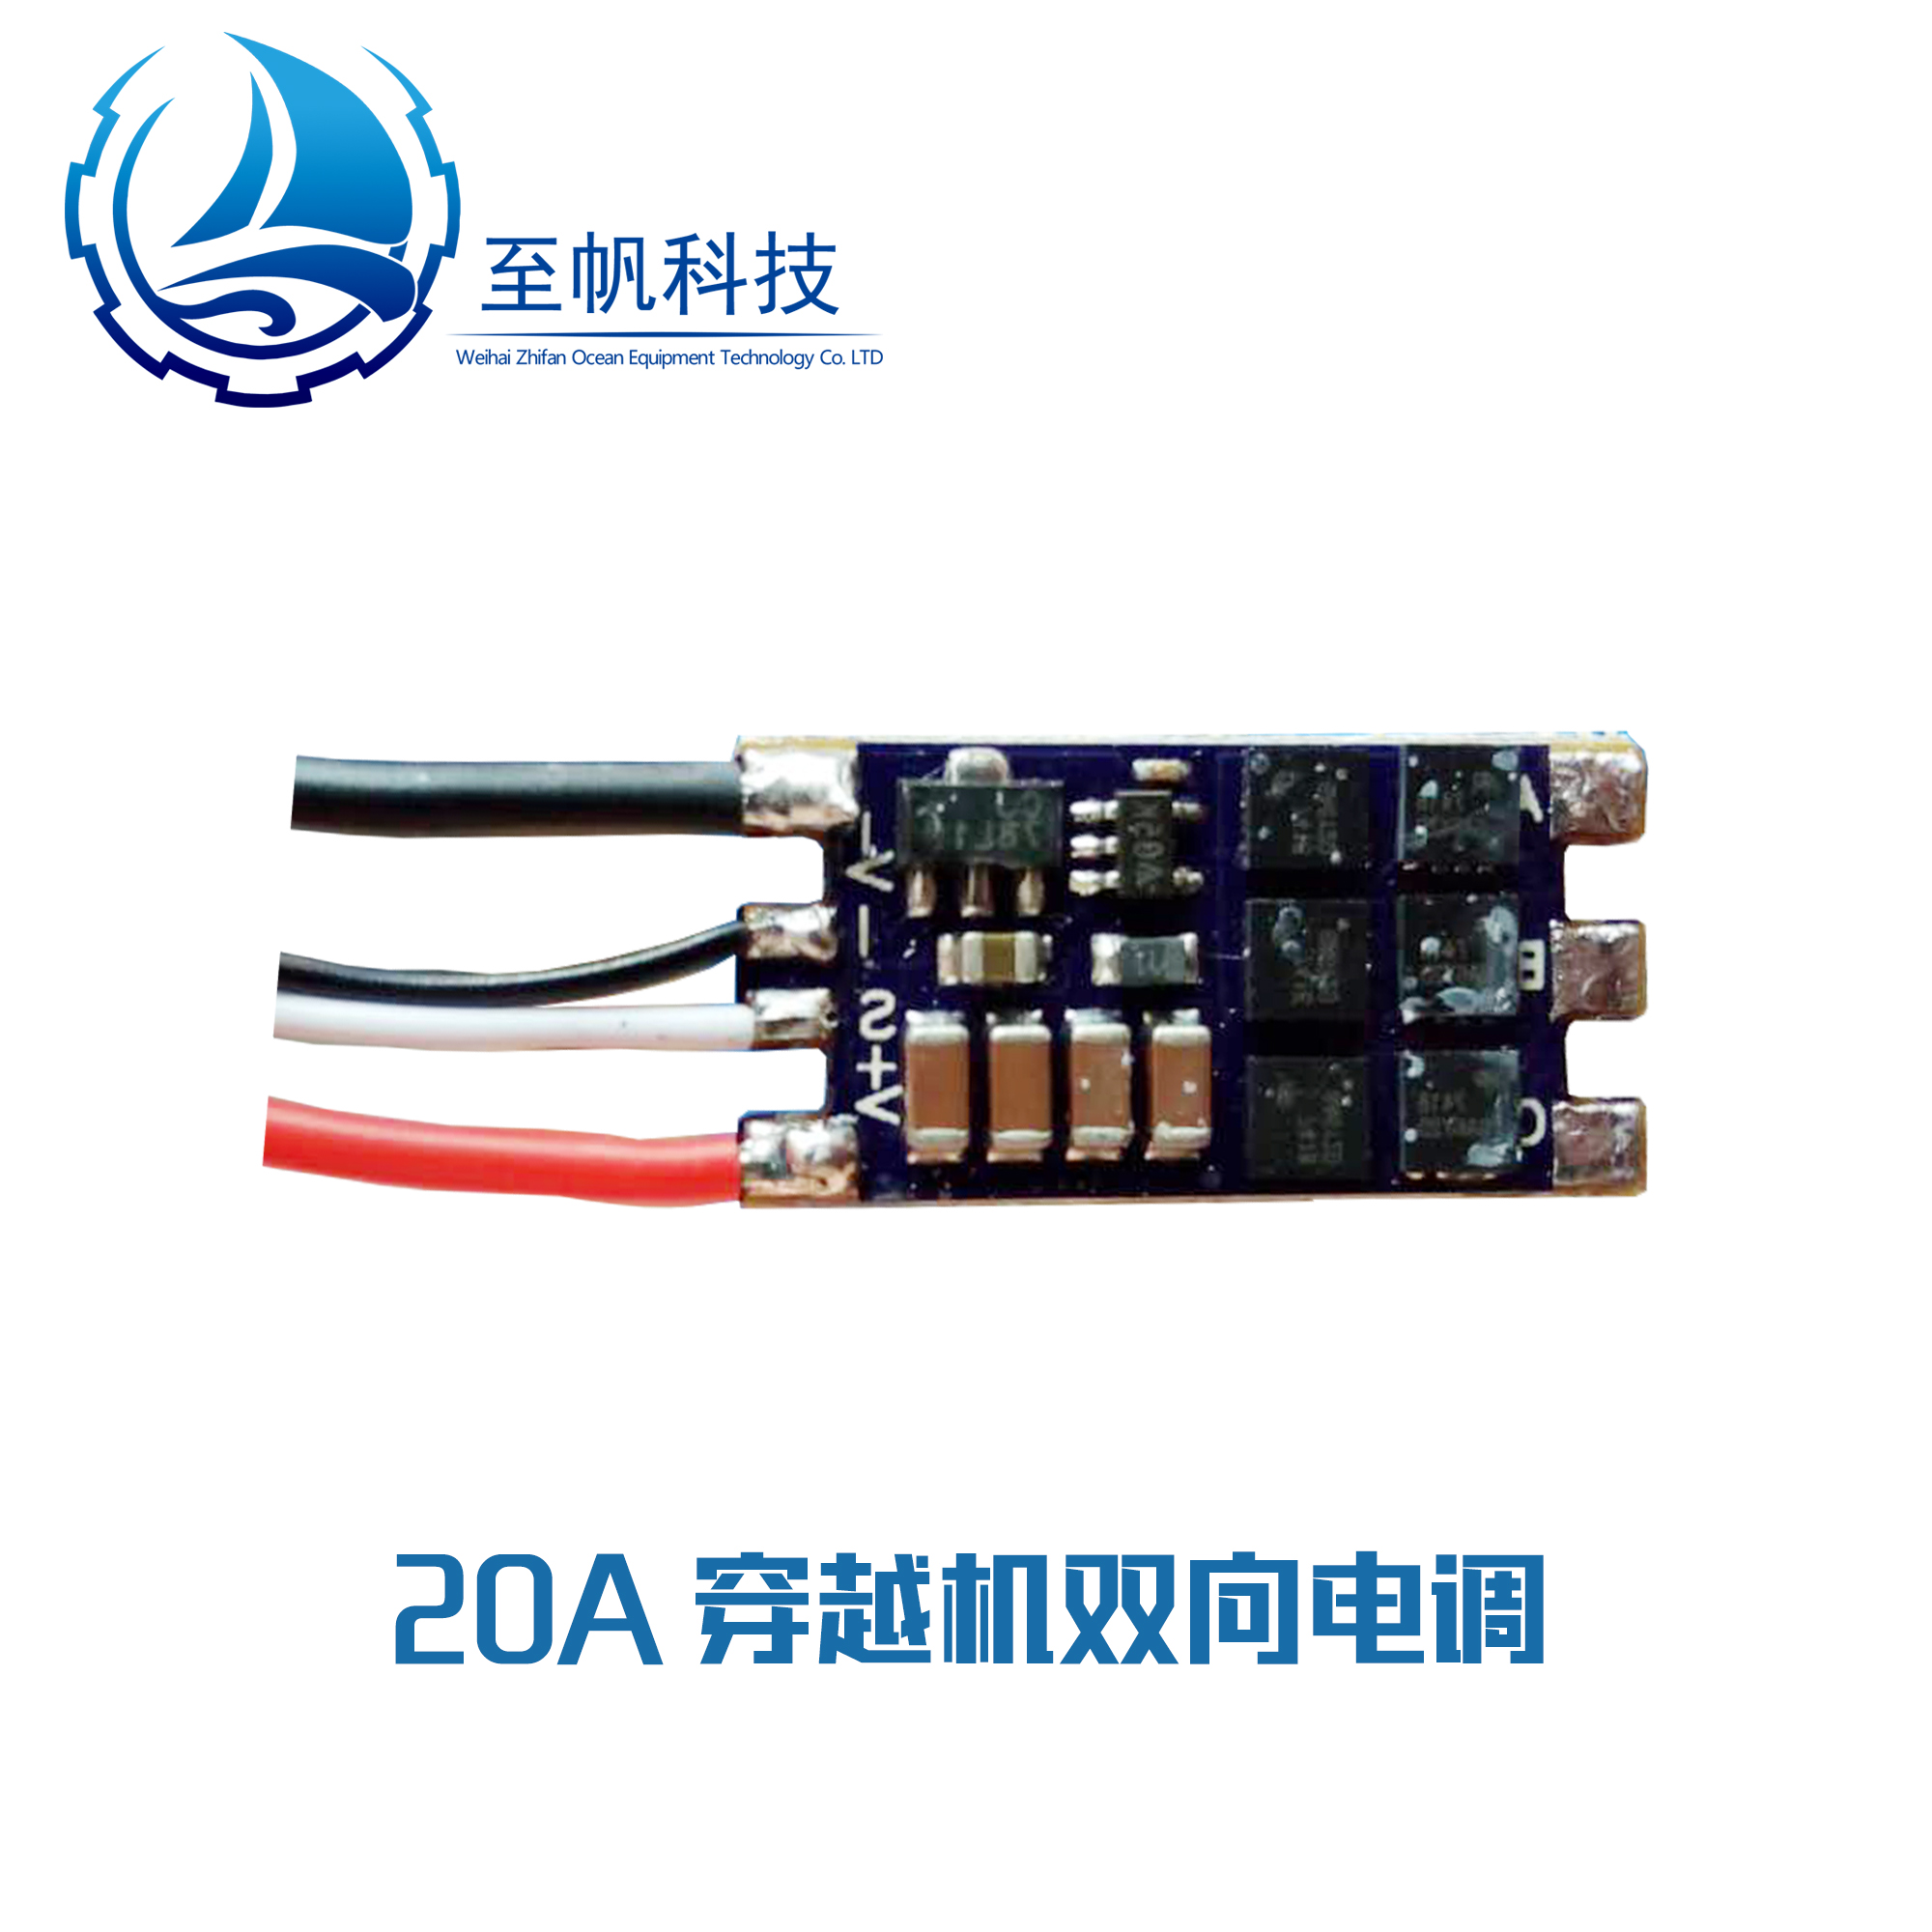 20A Underwater Vehicle ROV with Two-way Electrically Tuned Underwater Thruster20A Underwater Vehicle ROV with Two-way Electrically Tuned Underwater Thruster